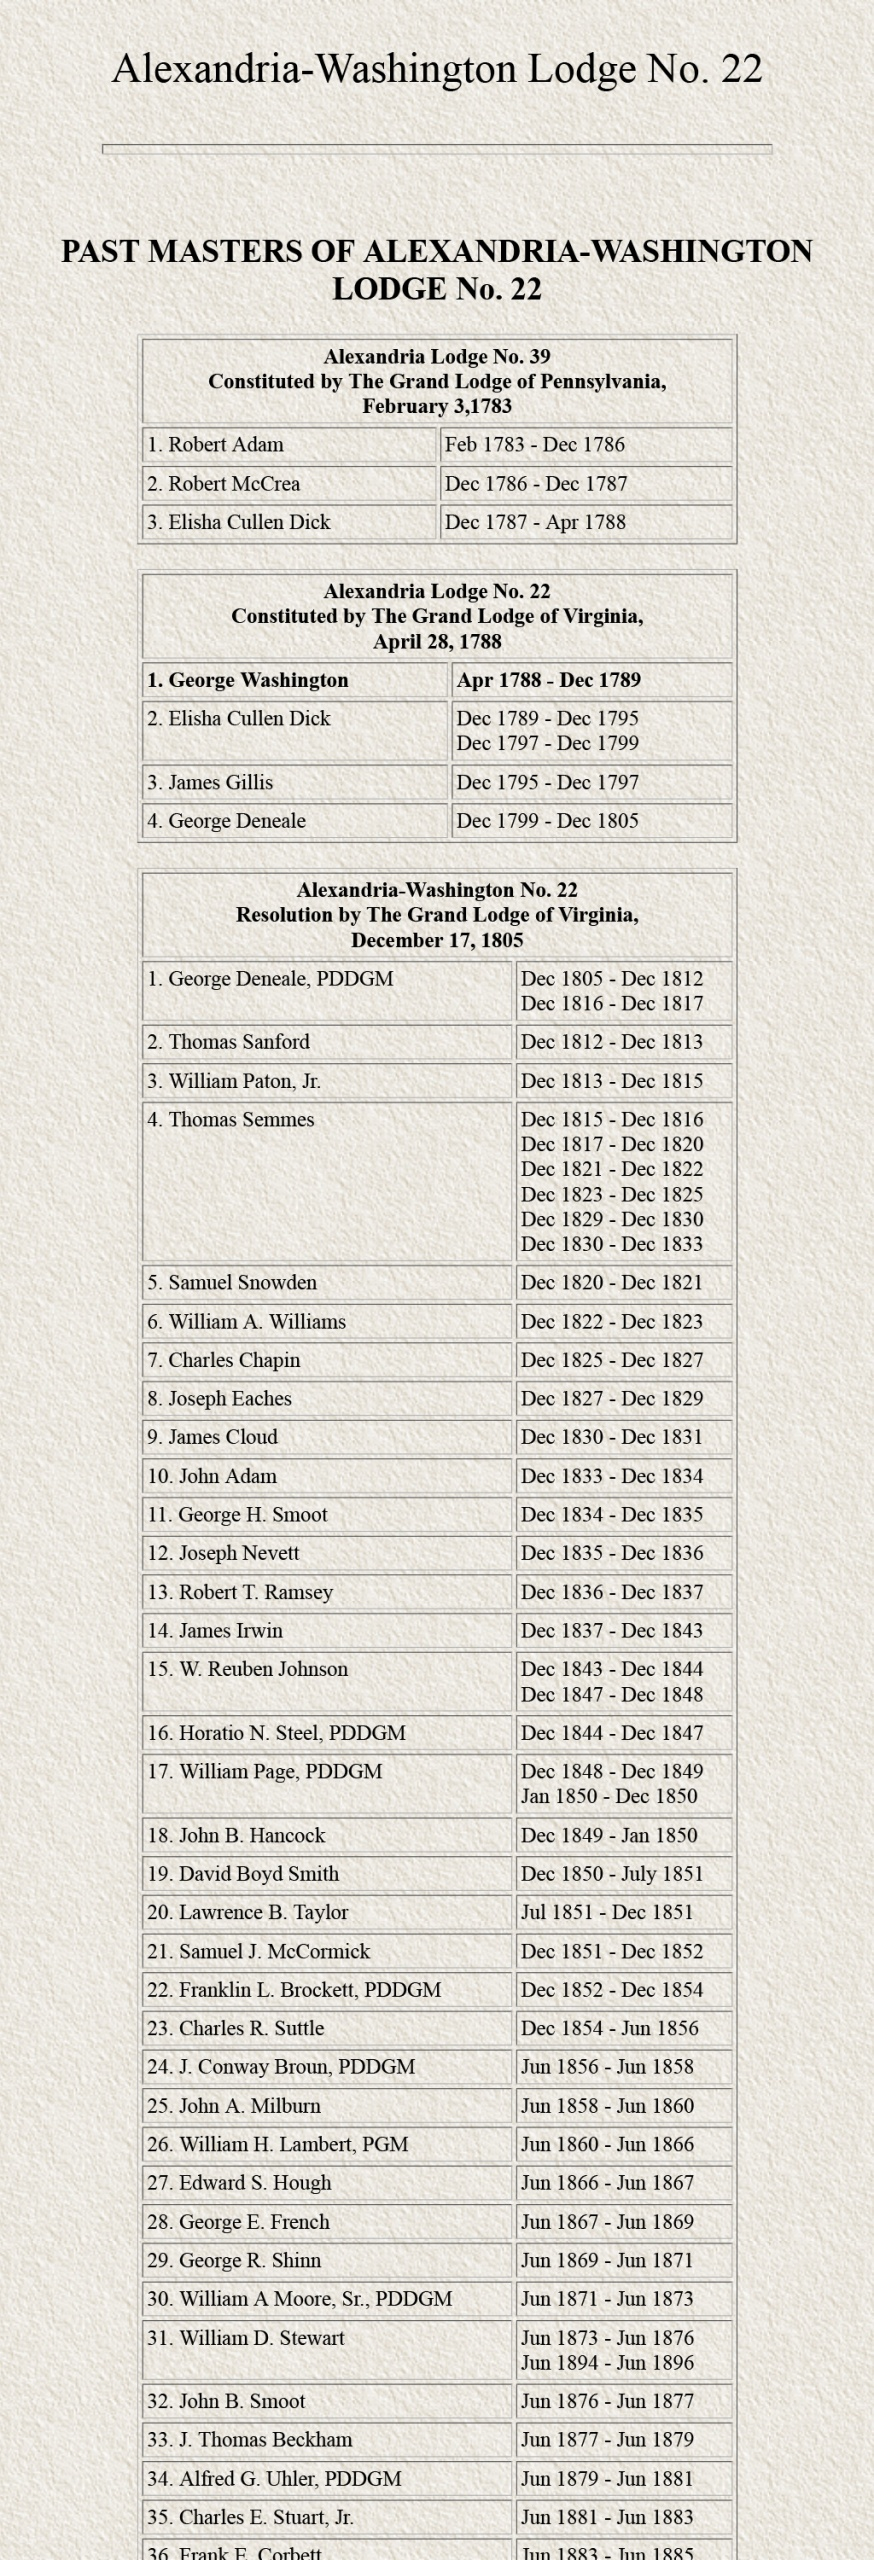 List of Past Masters